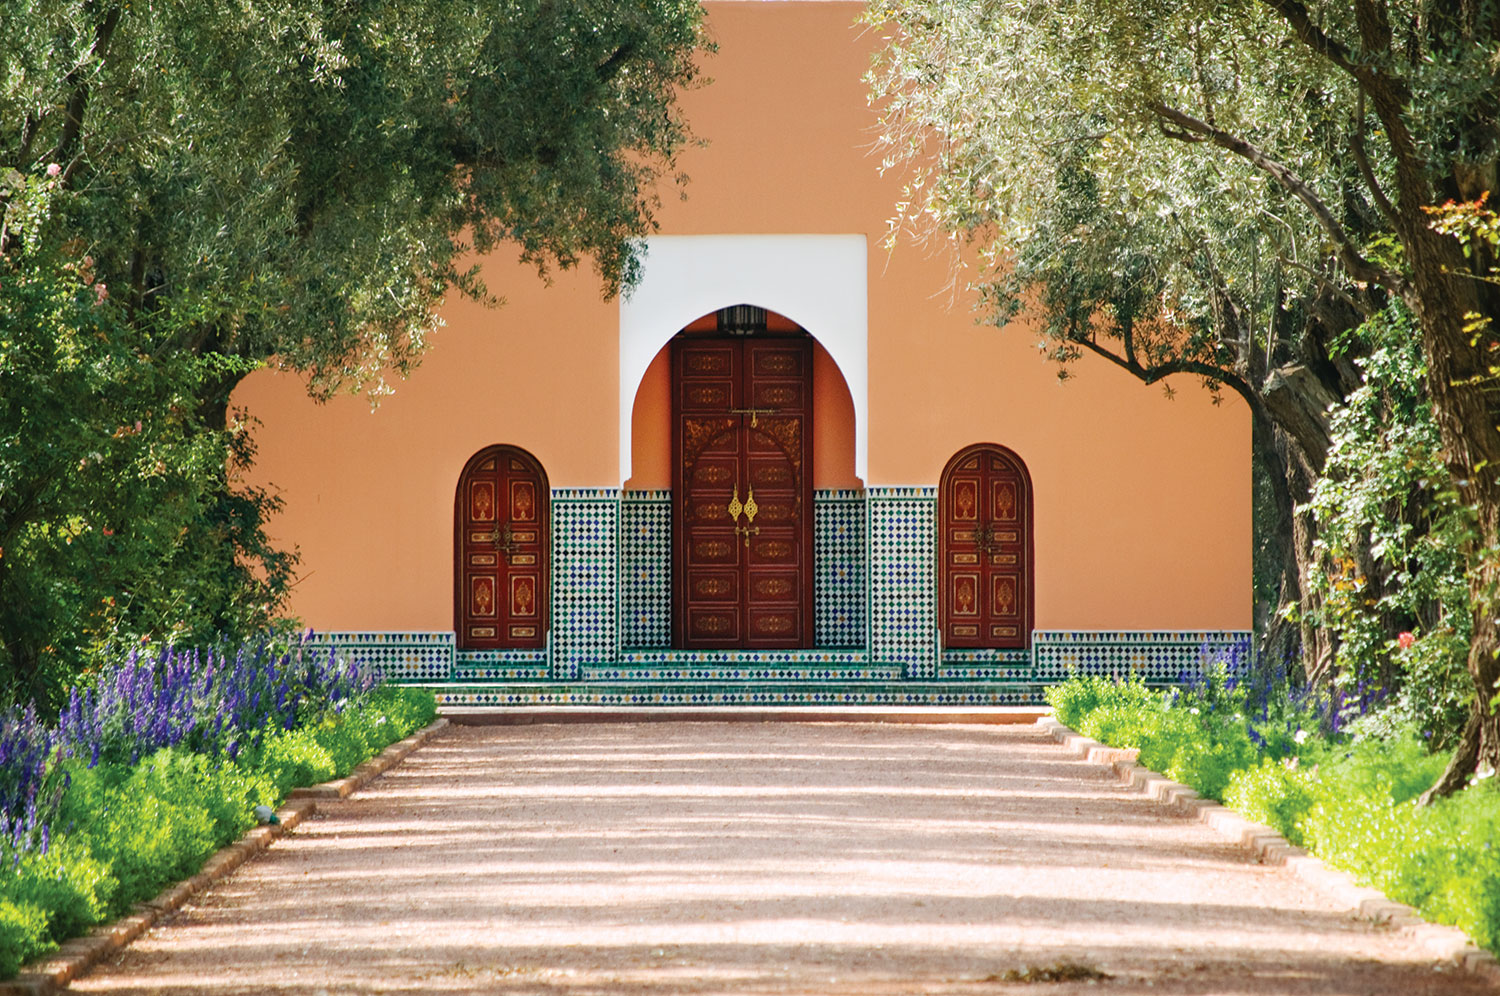 The Menzeh Pavilion At The La Mamounia Hotel Shows Off Signature Tilework  And Arch Detailing.